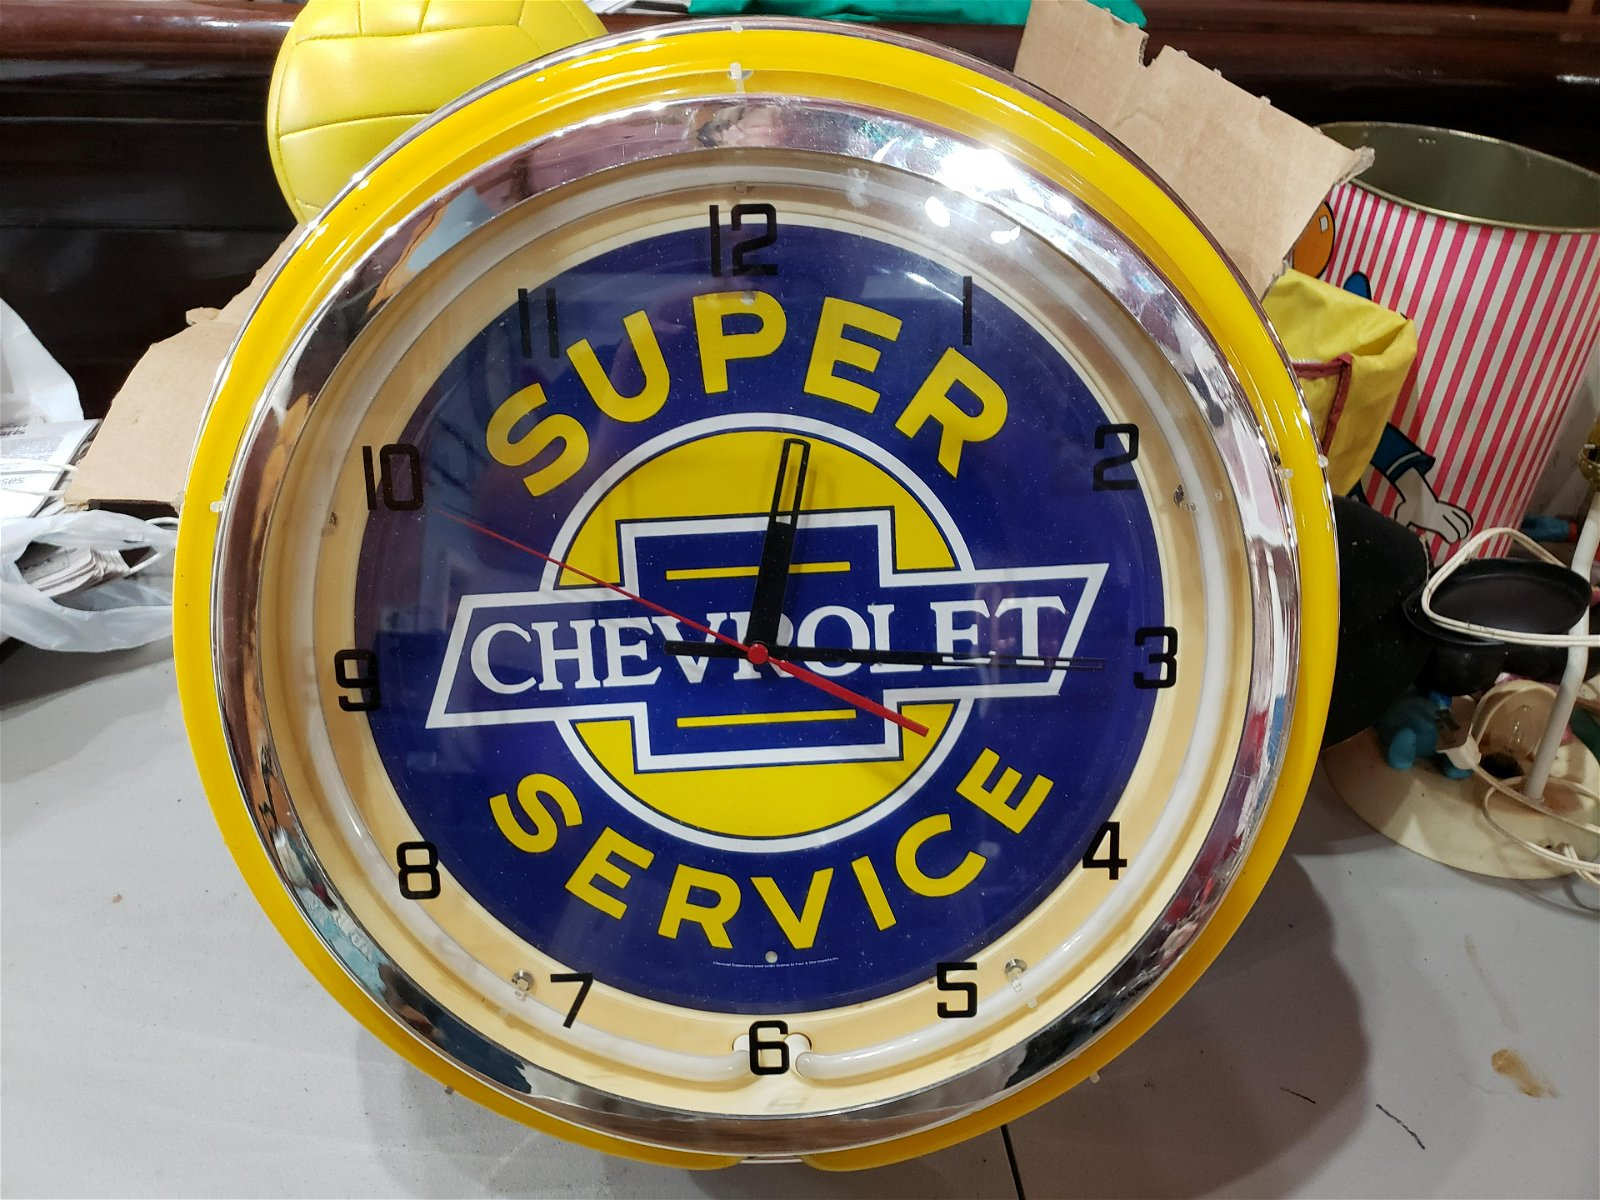 Chevrolet Super Service Lighted Clock not working